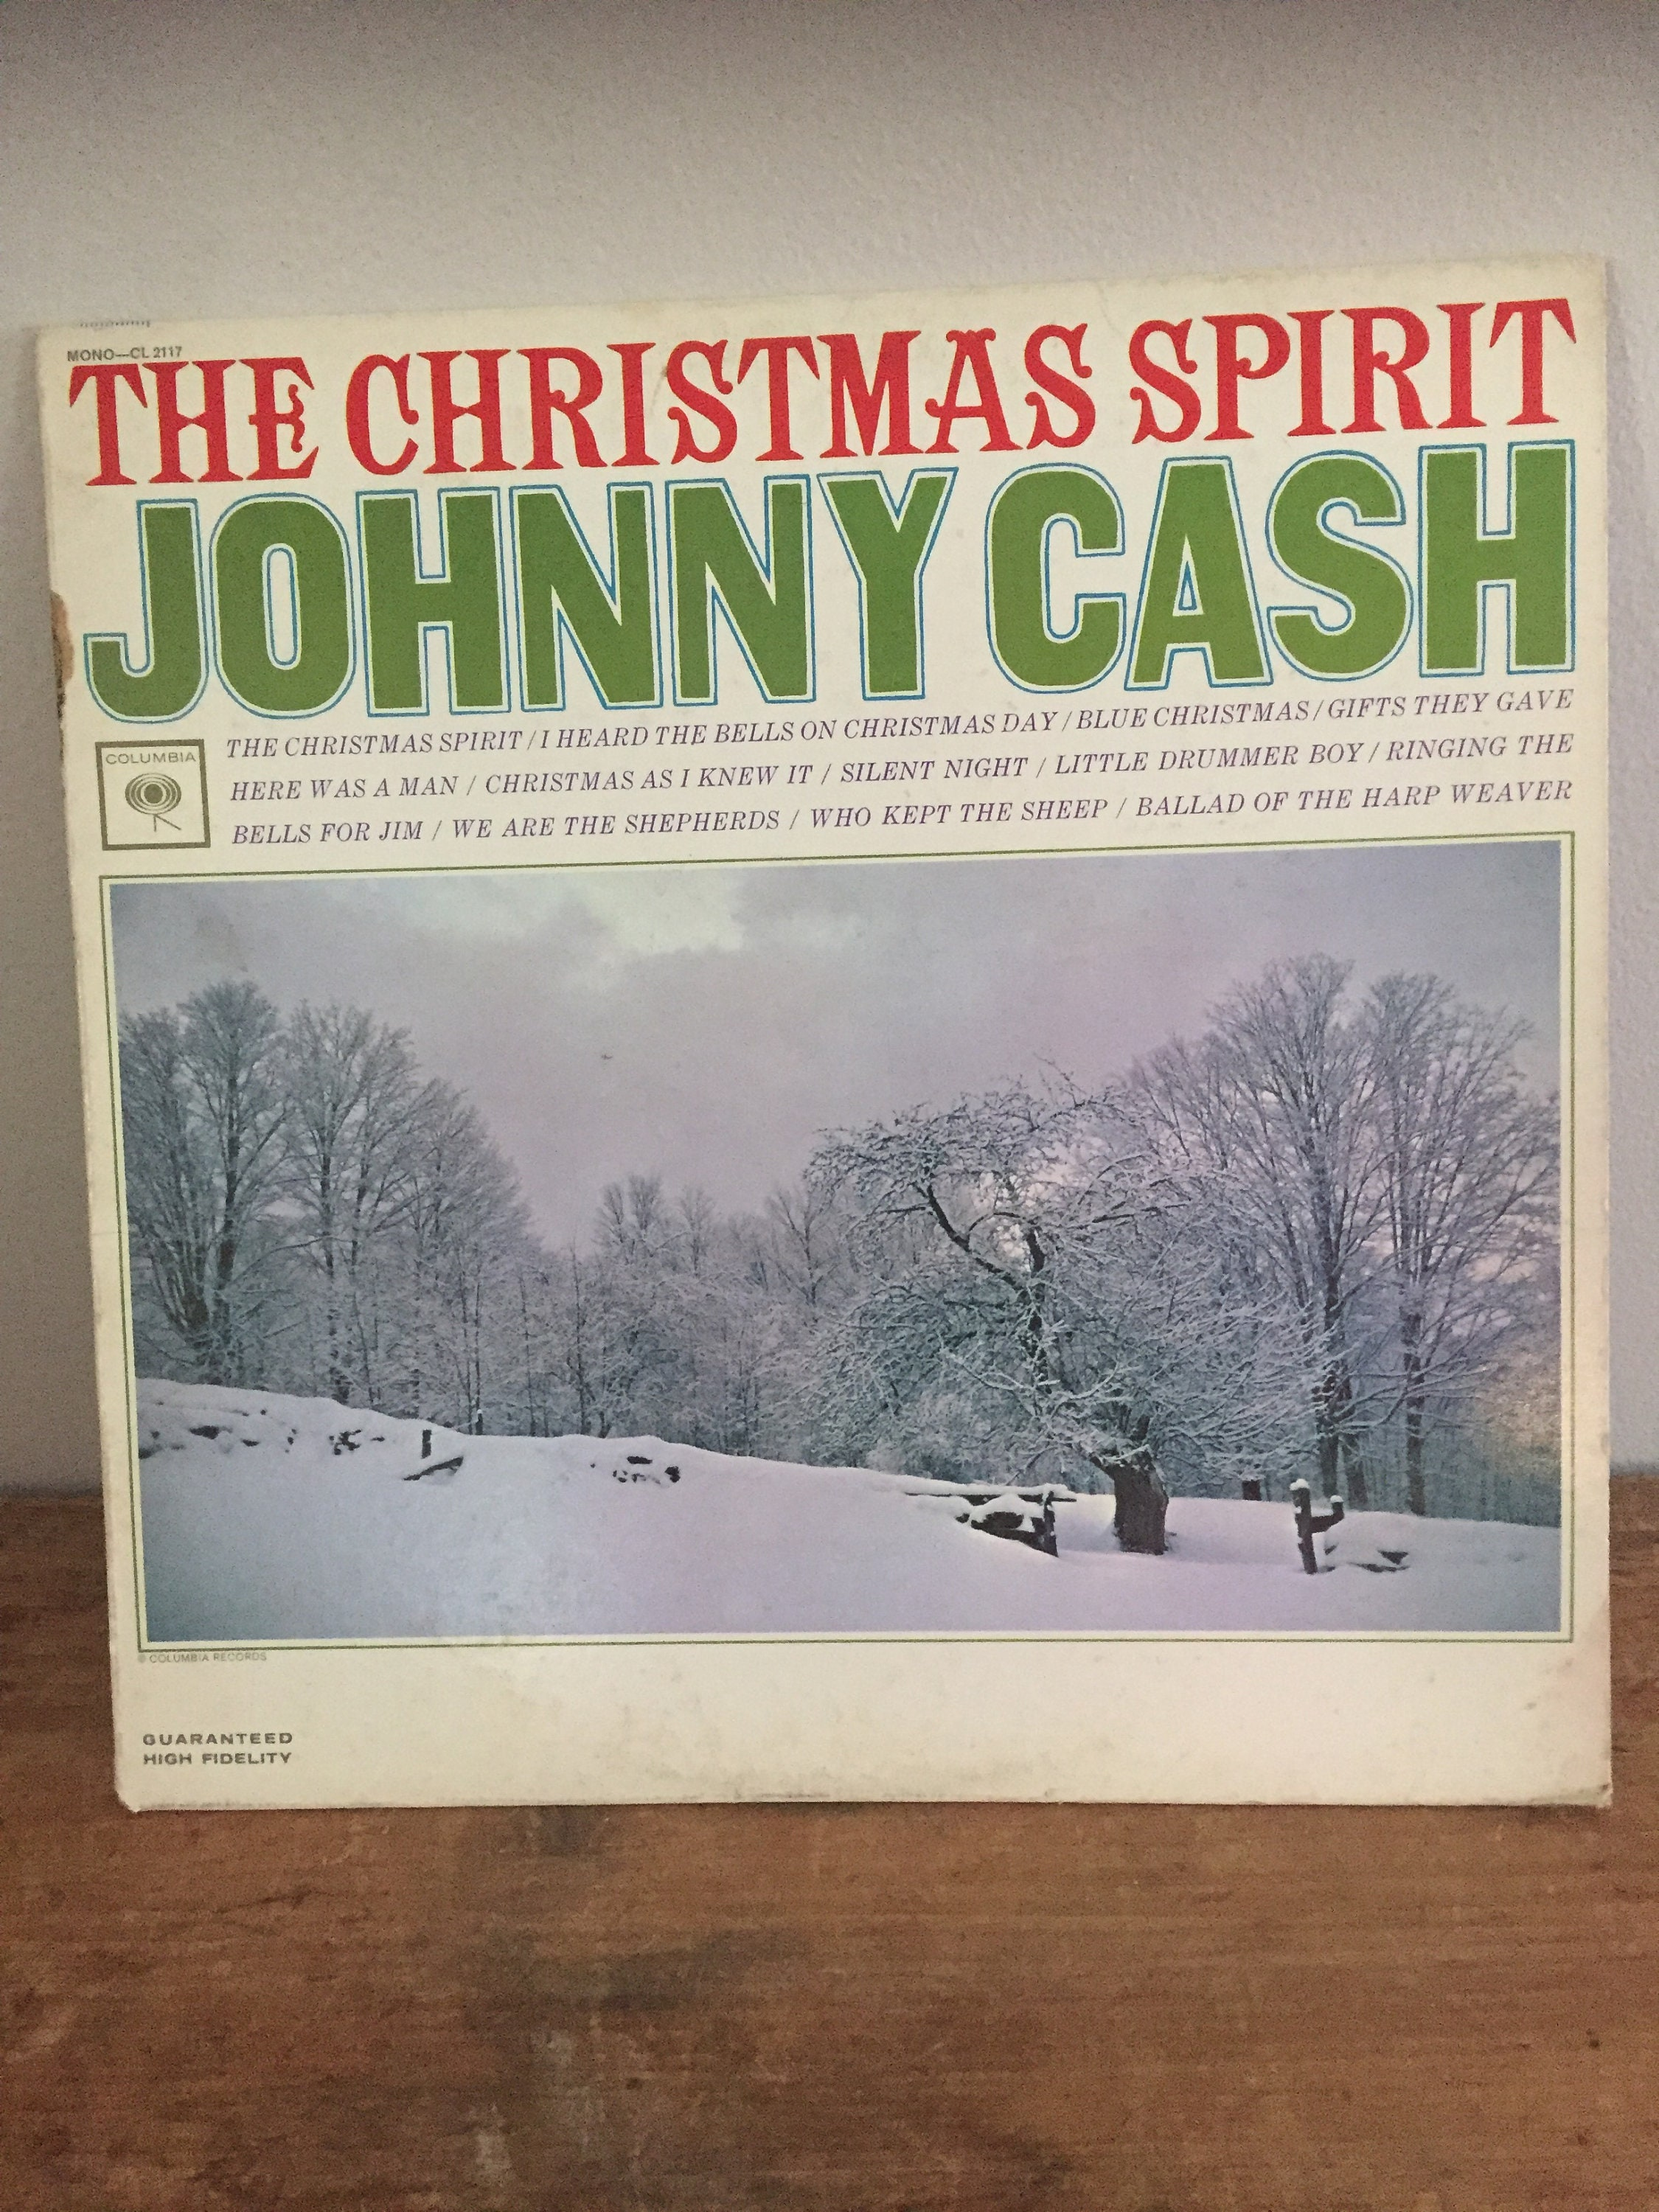 Vintage 1963 Johnny Cash The Christmas Spirit | Etsy